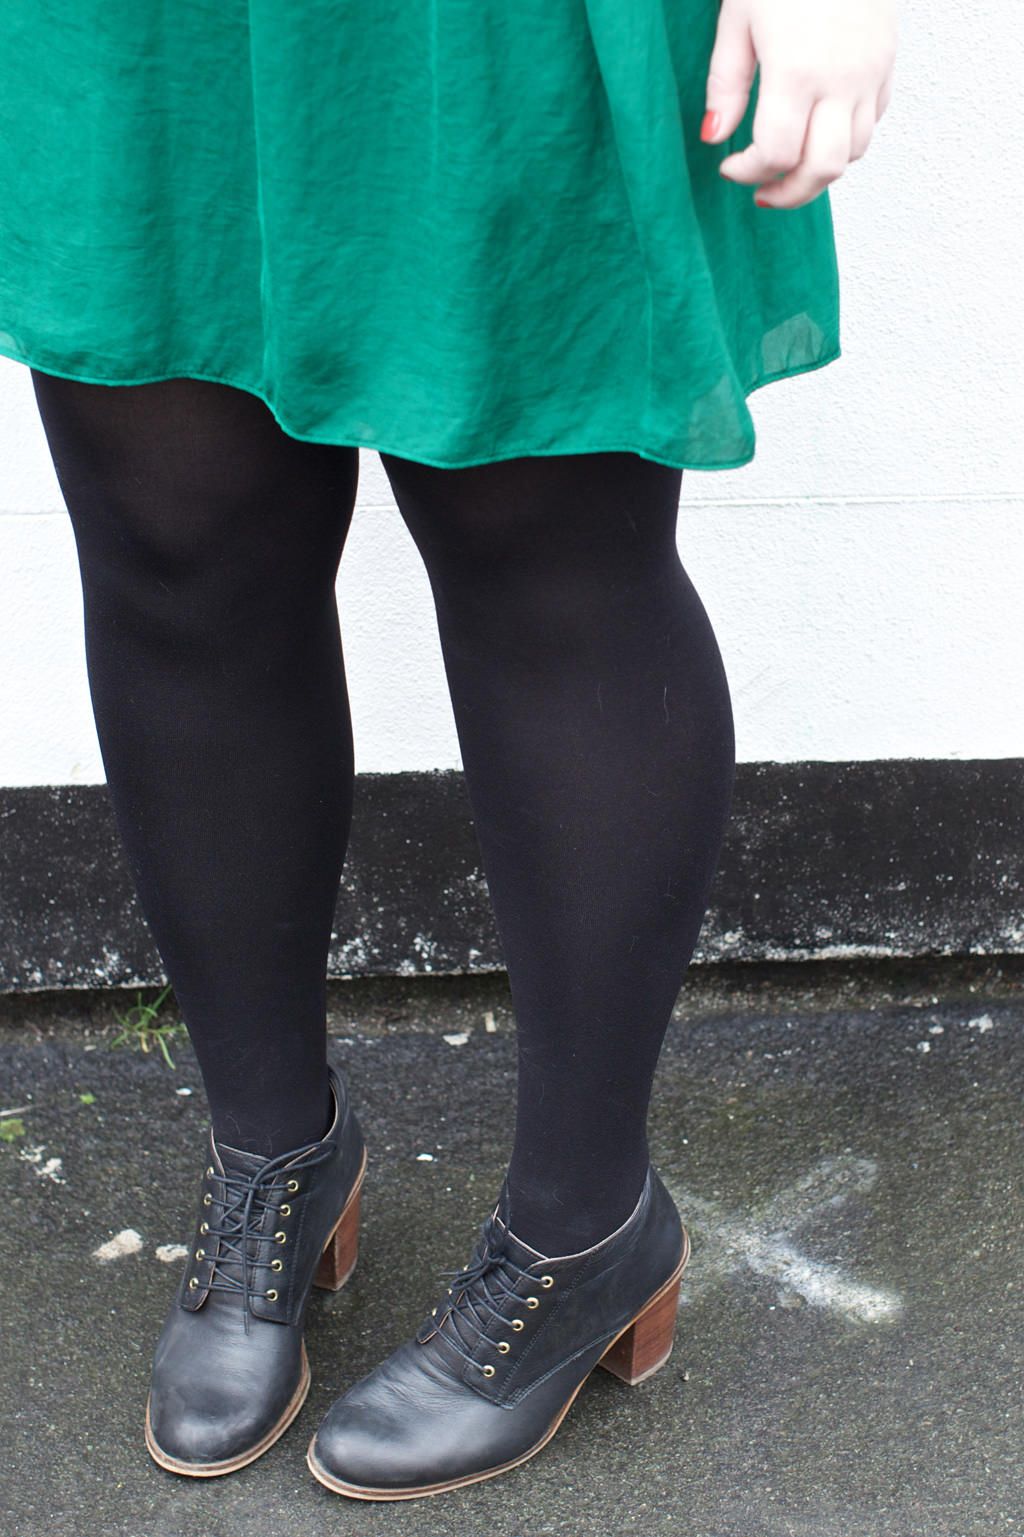 Office Lace Up Shoe Boots 021 OOTD: Zara Green Gathered Dress & Plaited Necklace